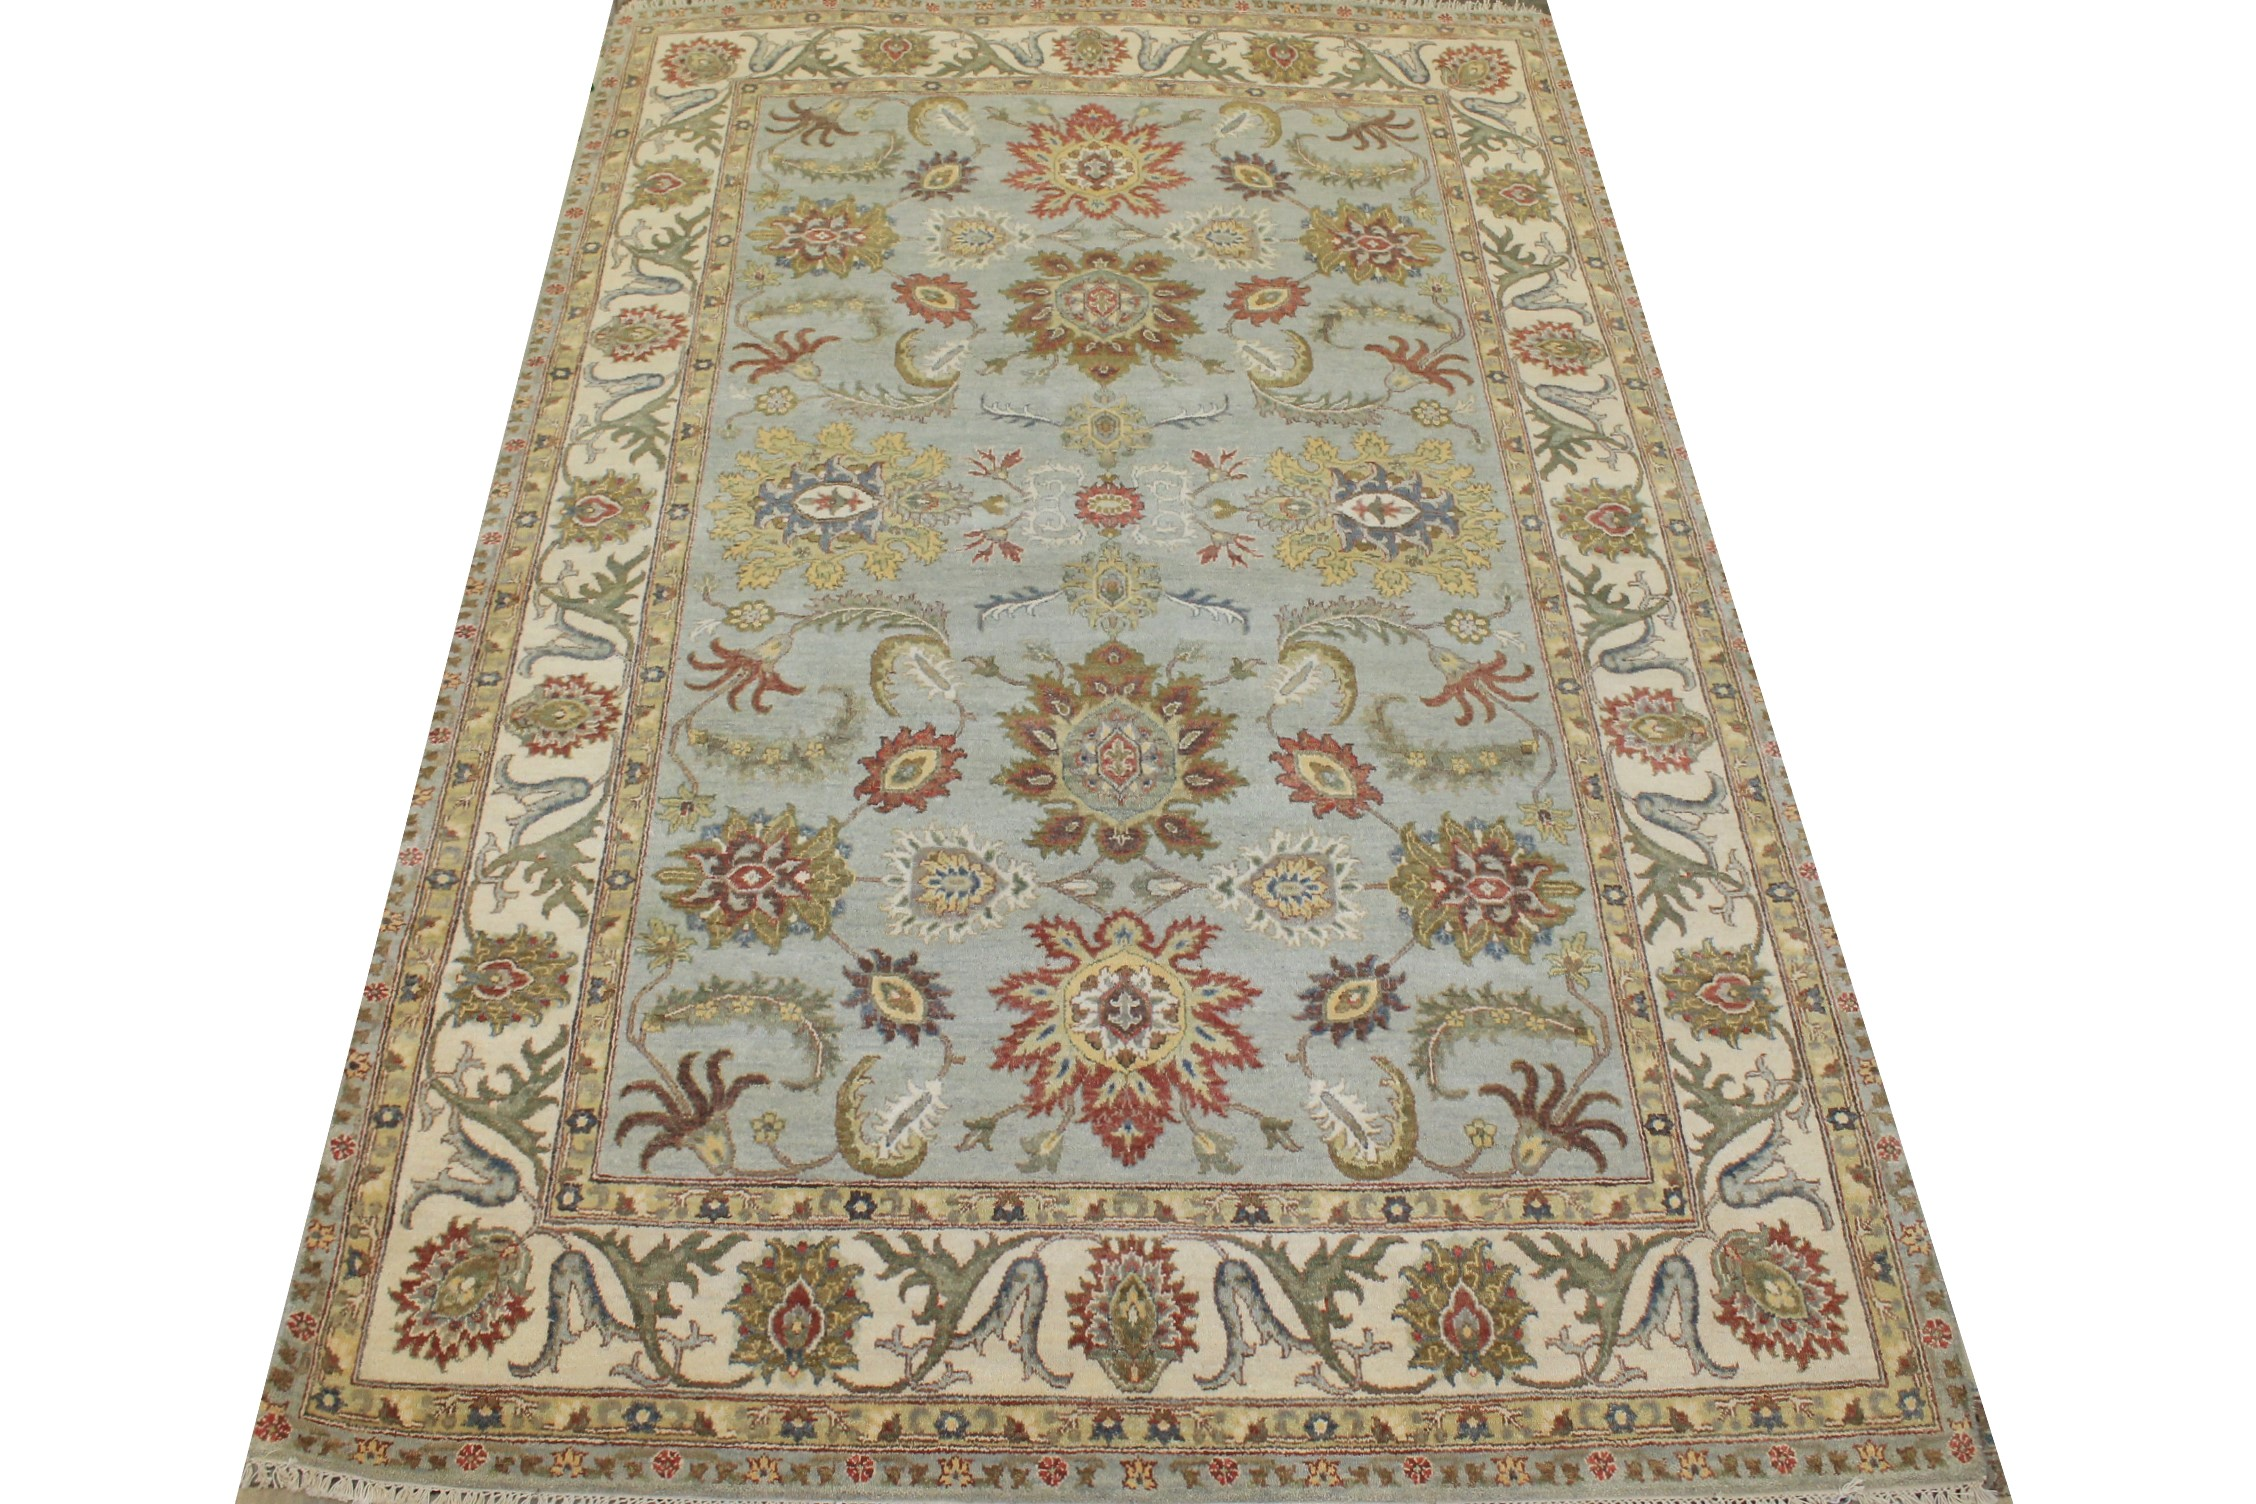 6x9 Oriental Hand Knotted Wool Area Rug - MR025532